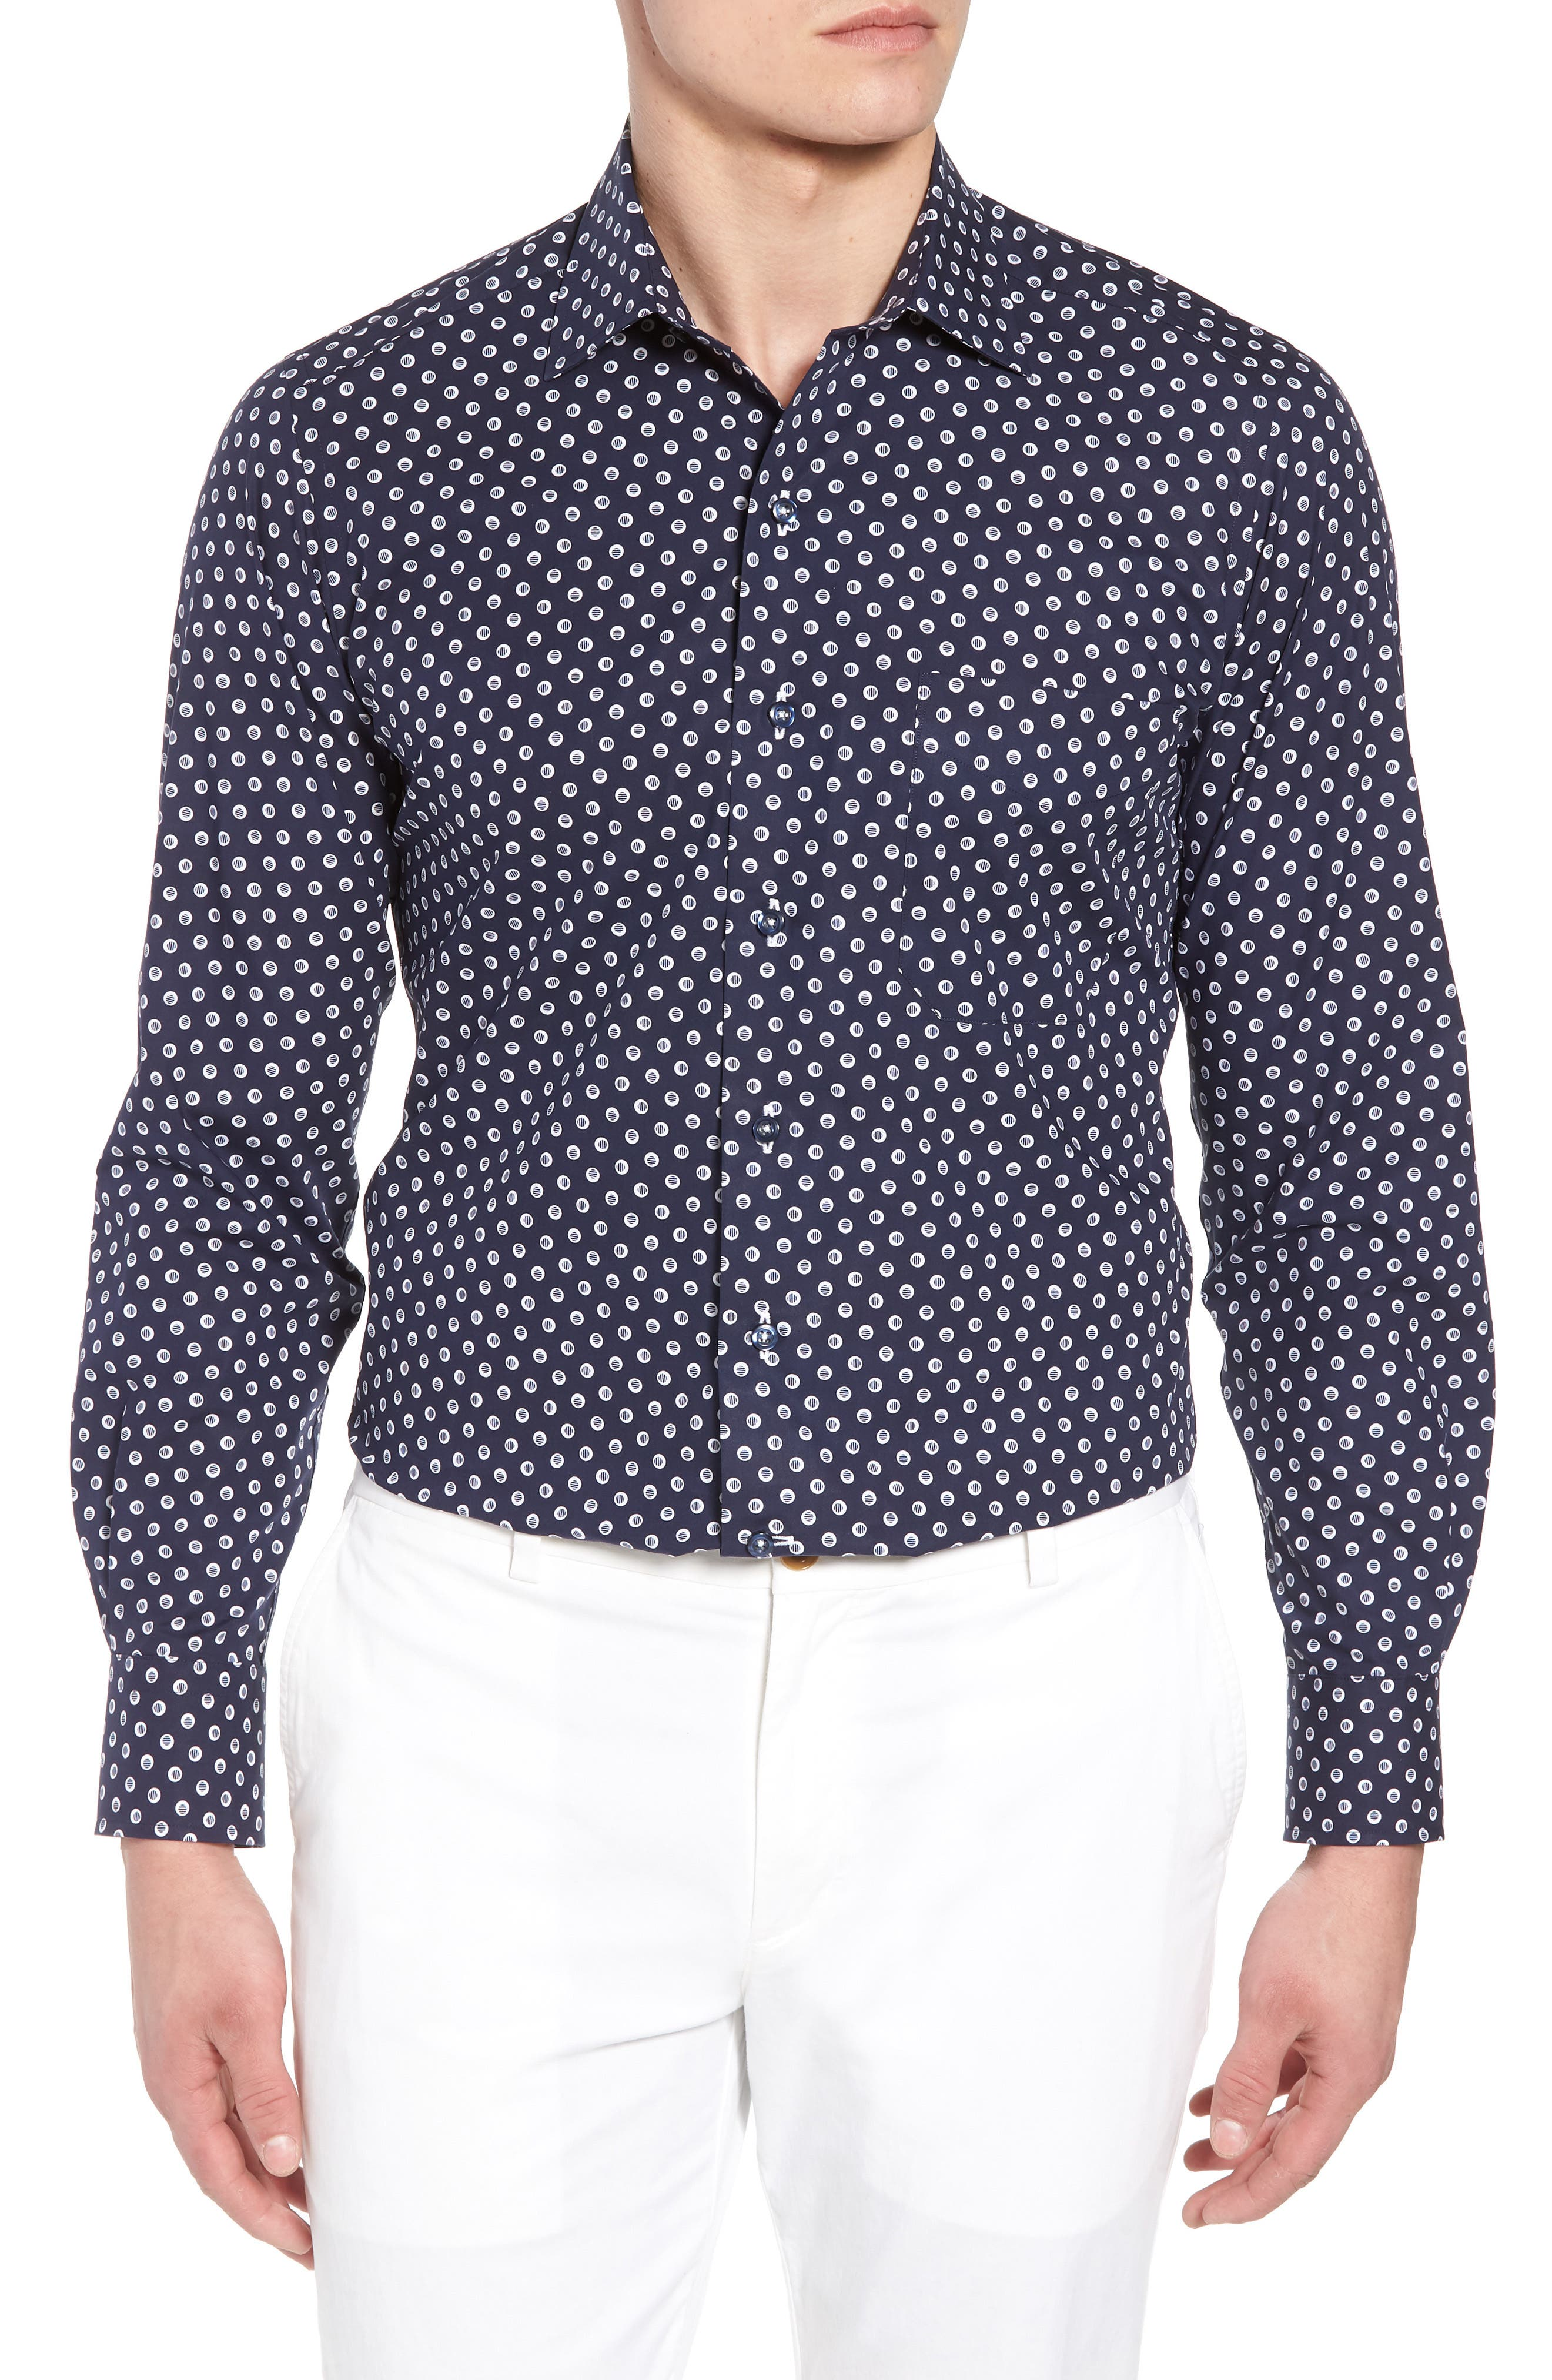 Regular Fit Dot Print Sport Shirt,                             Main thumbnail 1, color,                             Navy/ White